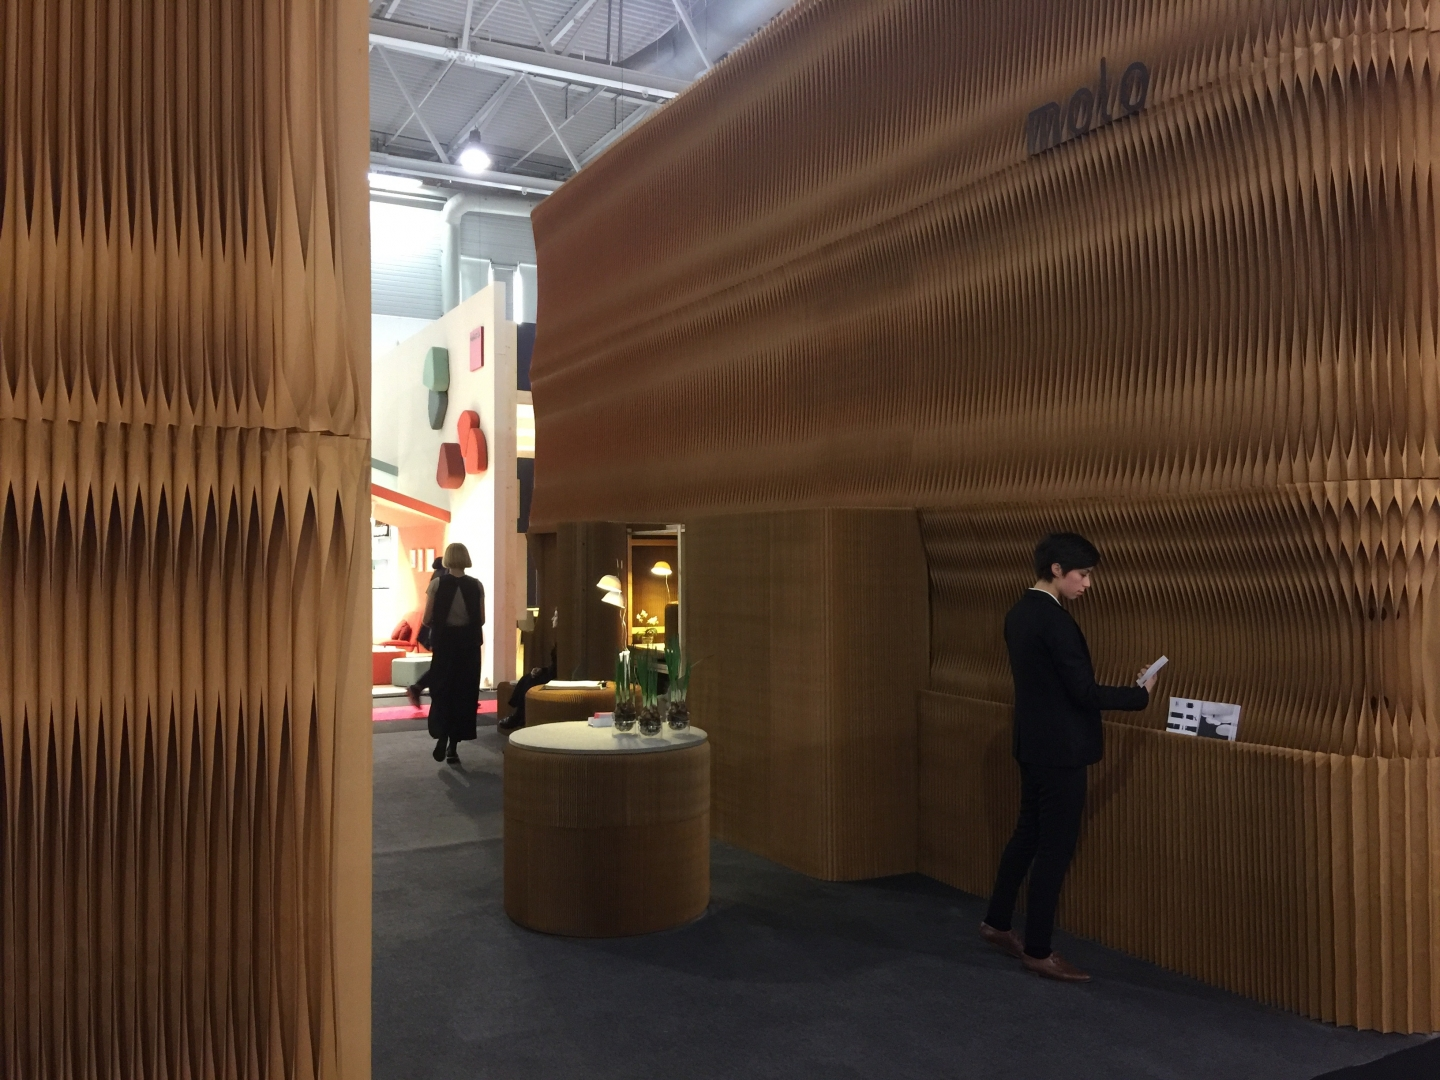 molo's soft collection on display at Maison & Objet